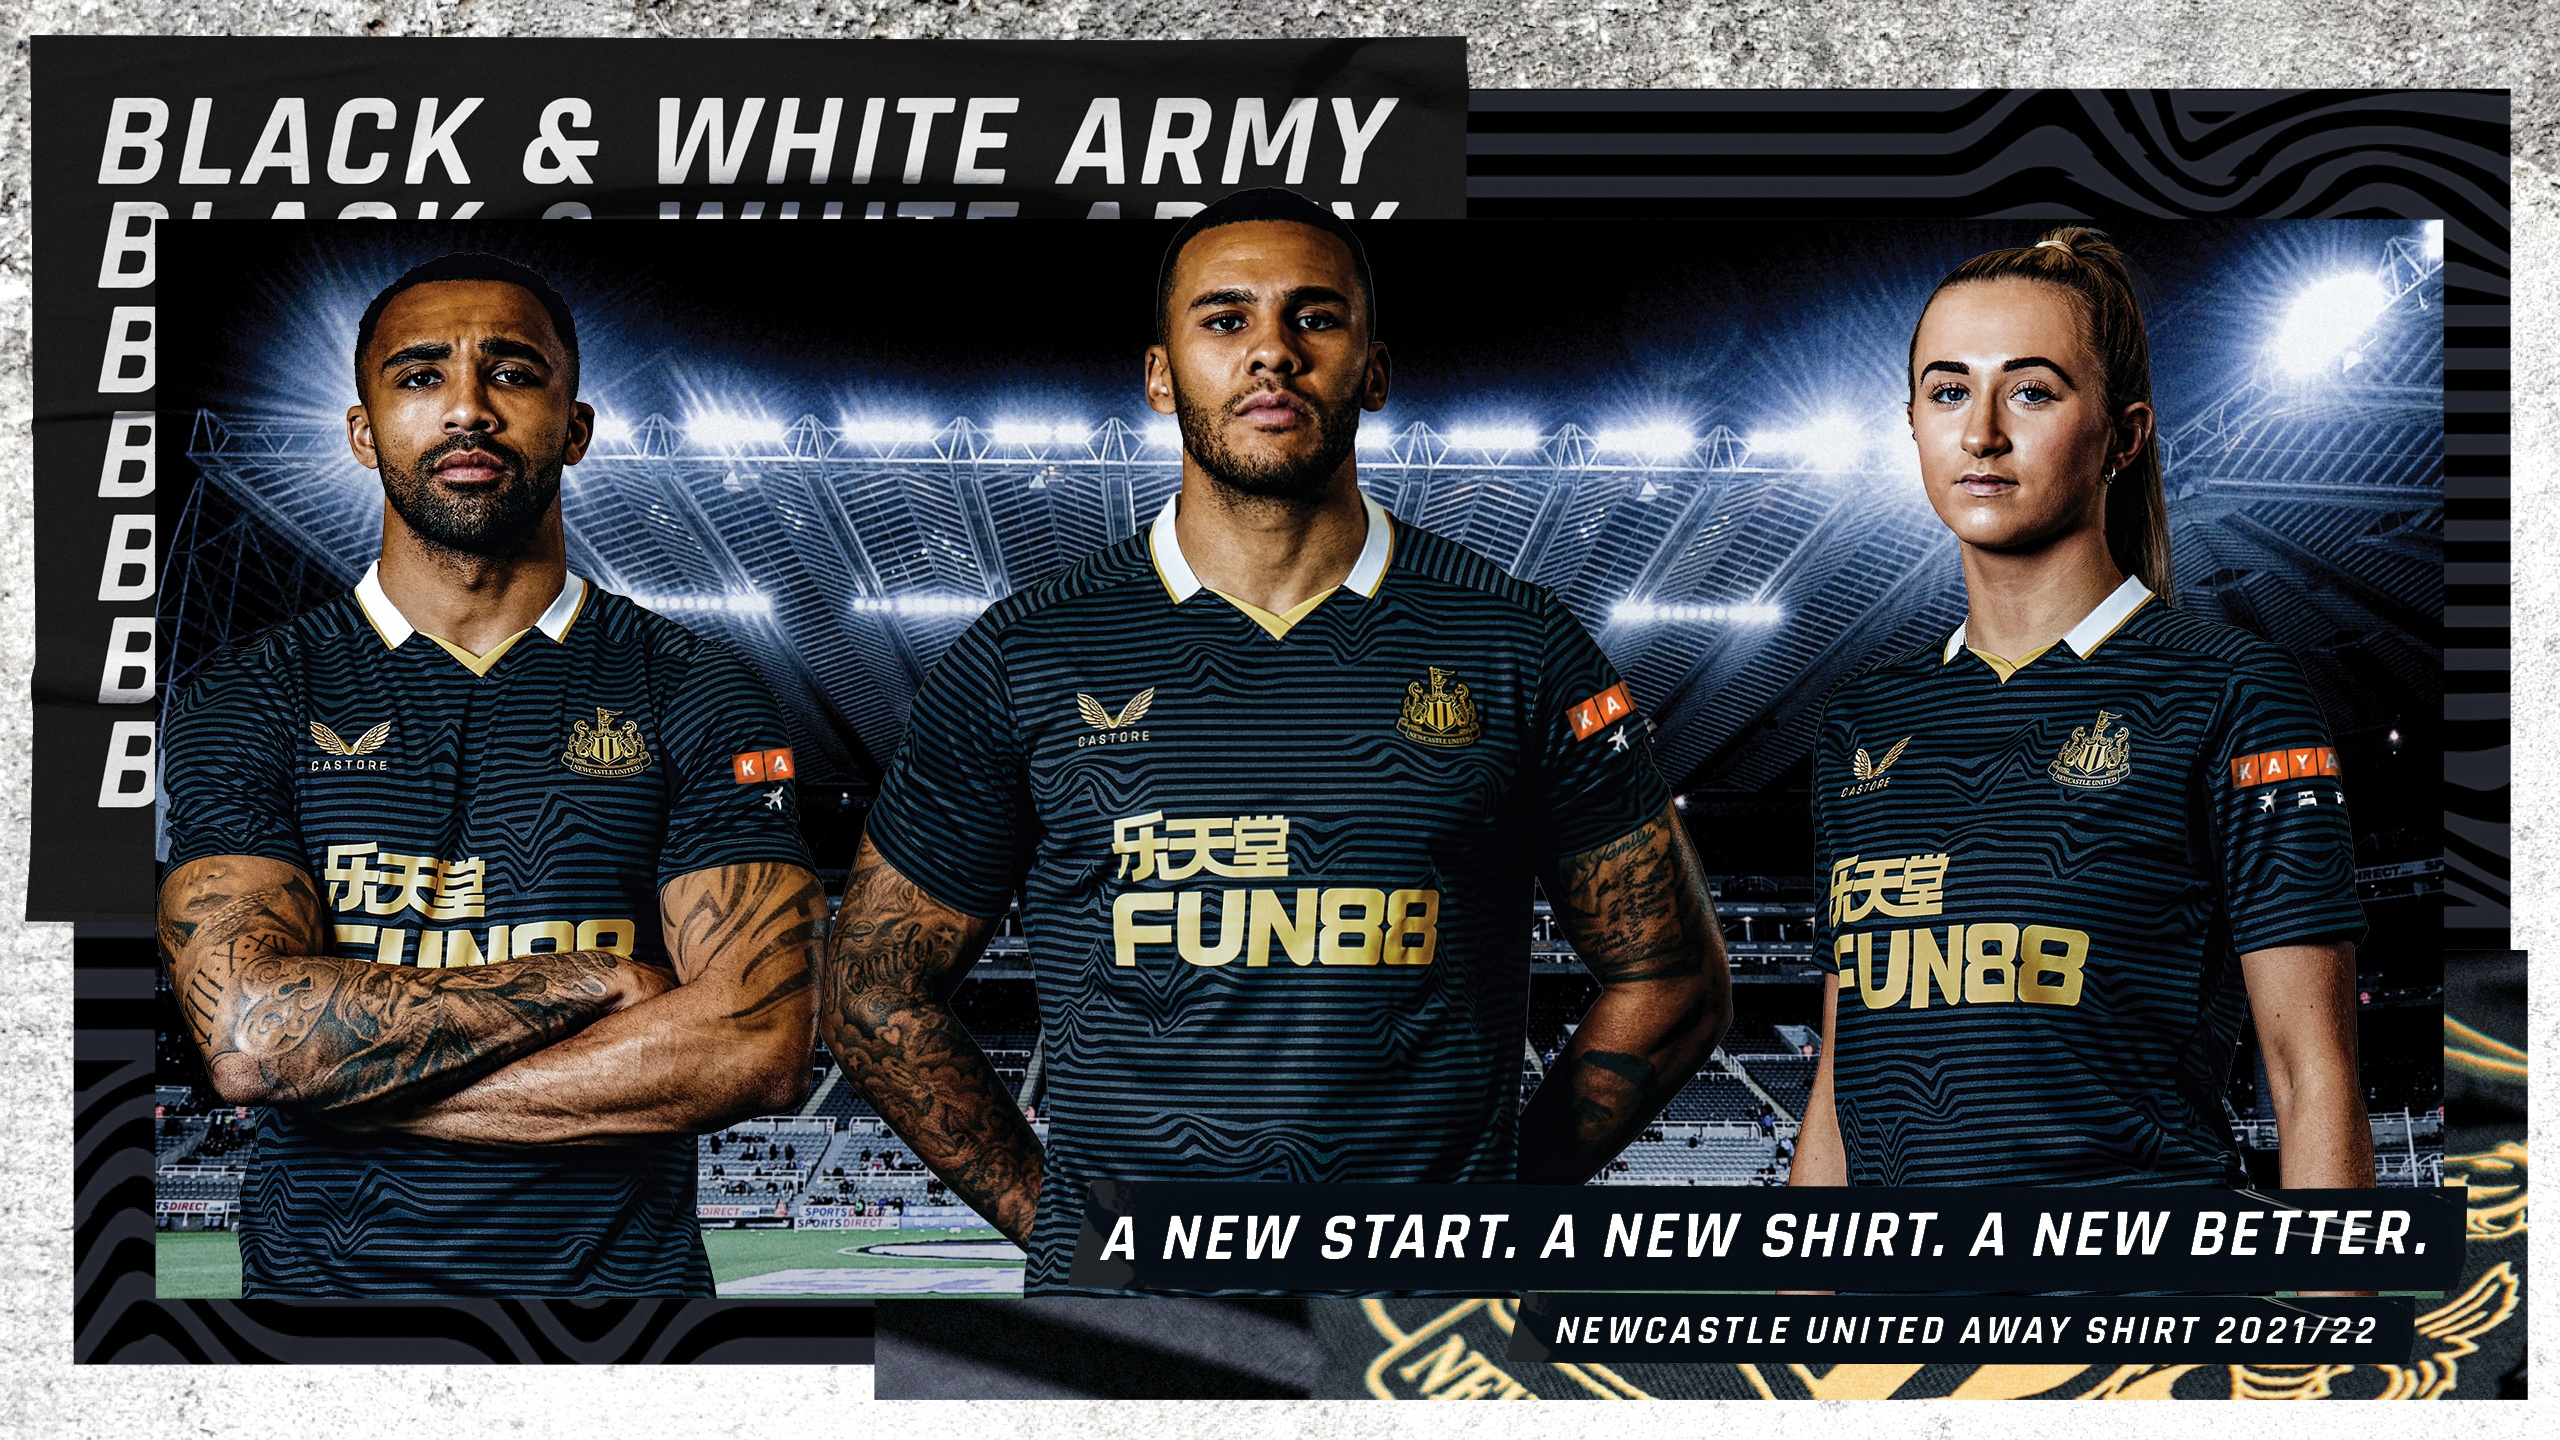 Newcastle United - Introducing our new 2021/22 away kit